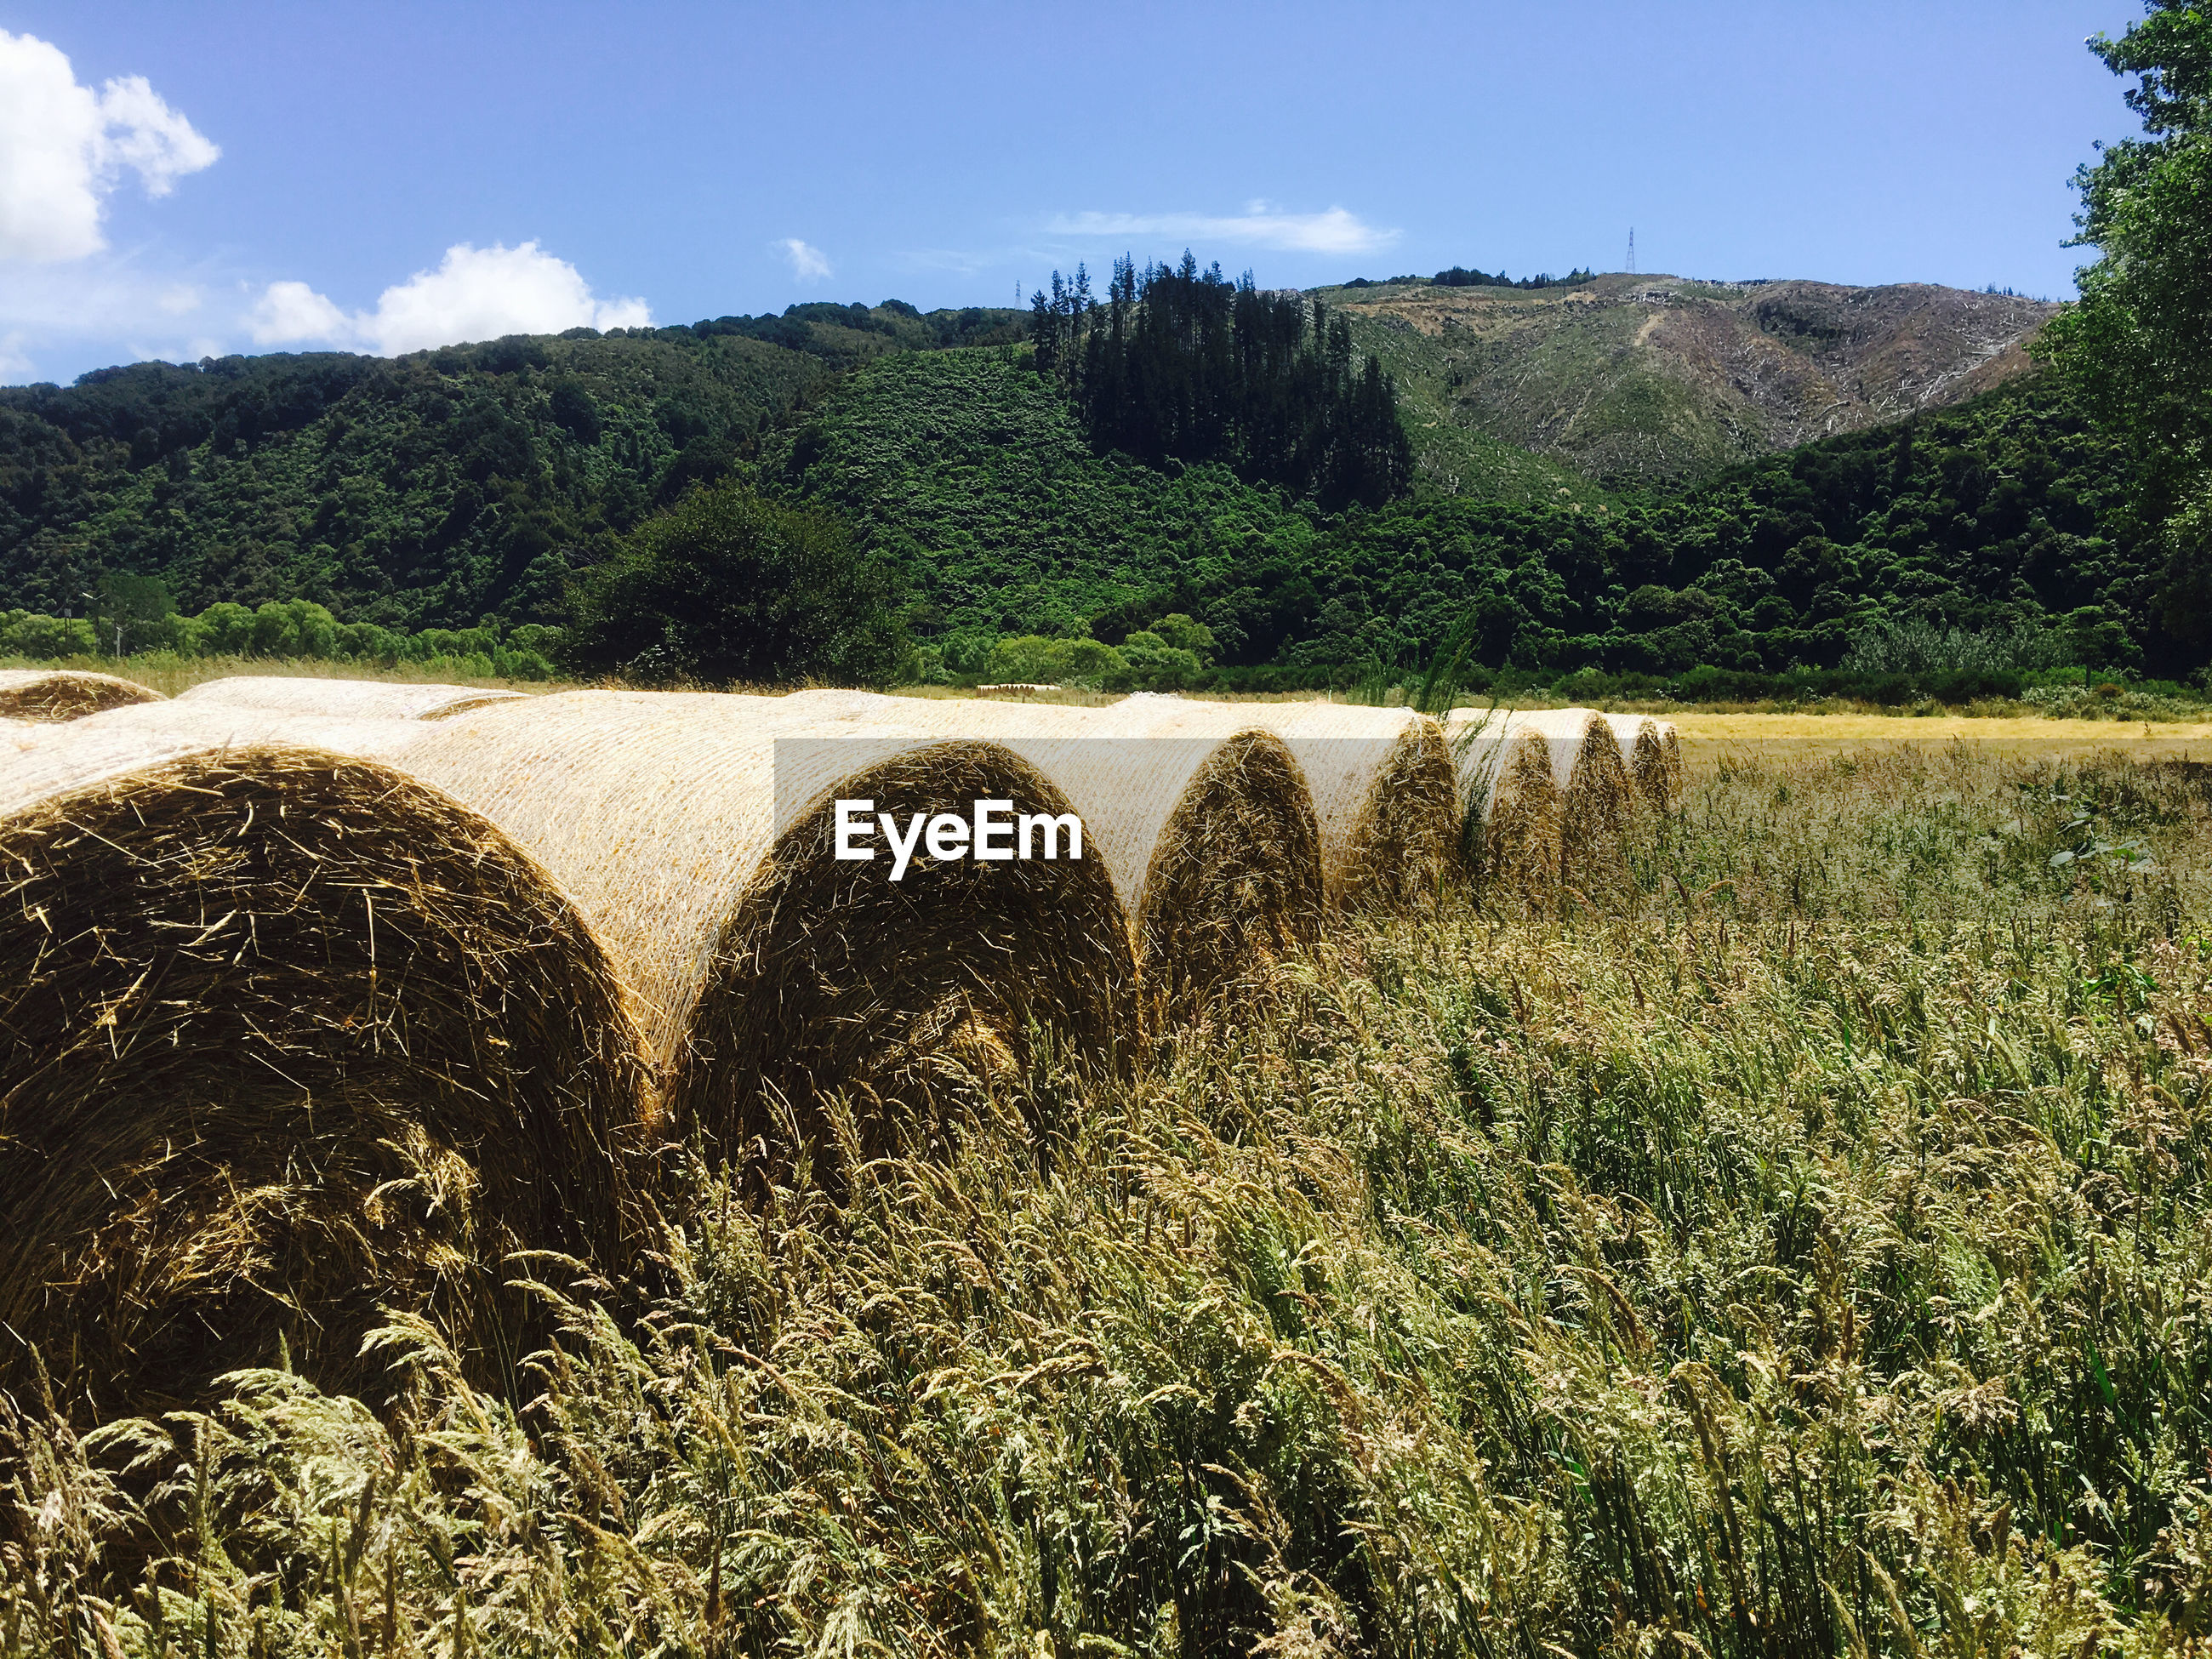 Scenic view of hay bales on field against sky